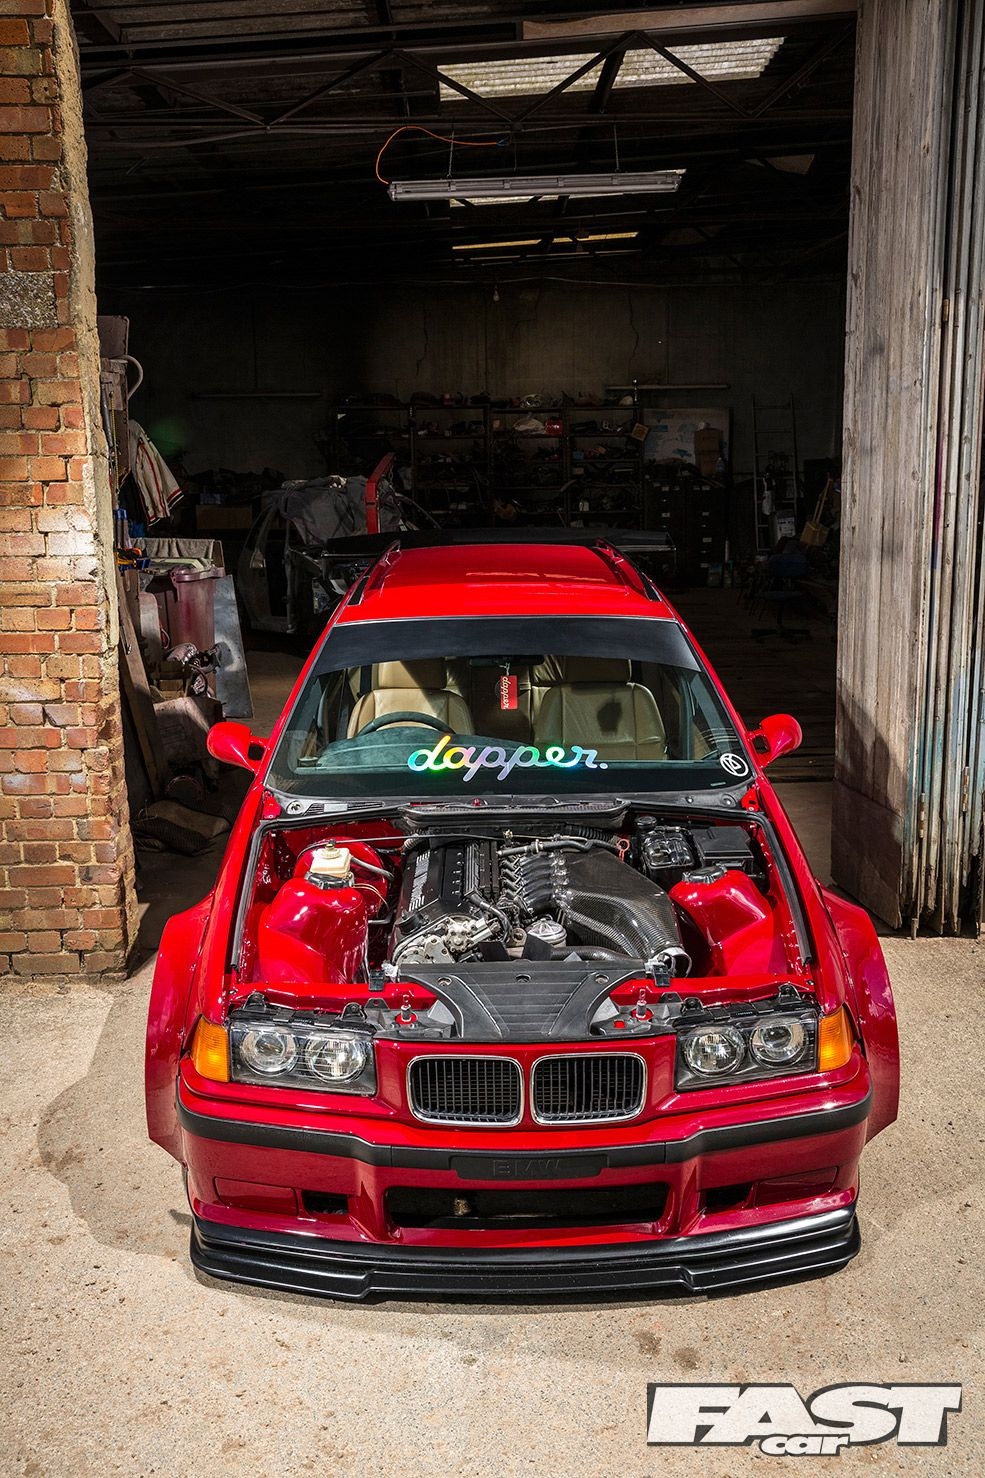 Modified Bmw E36 M3 Touring With Images Bmw Bmw E36 Touring